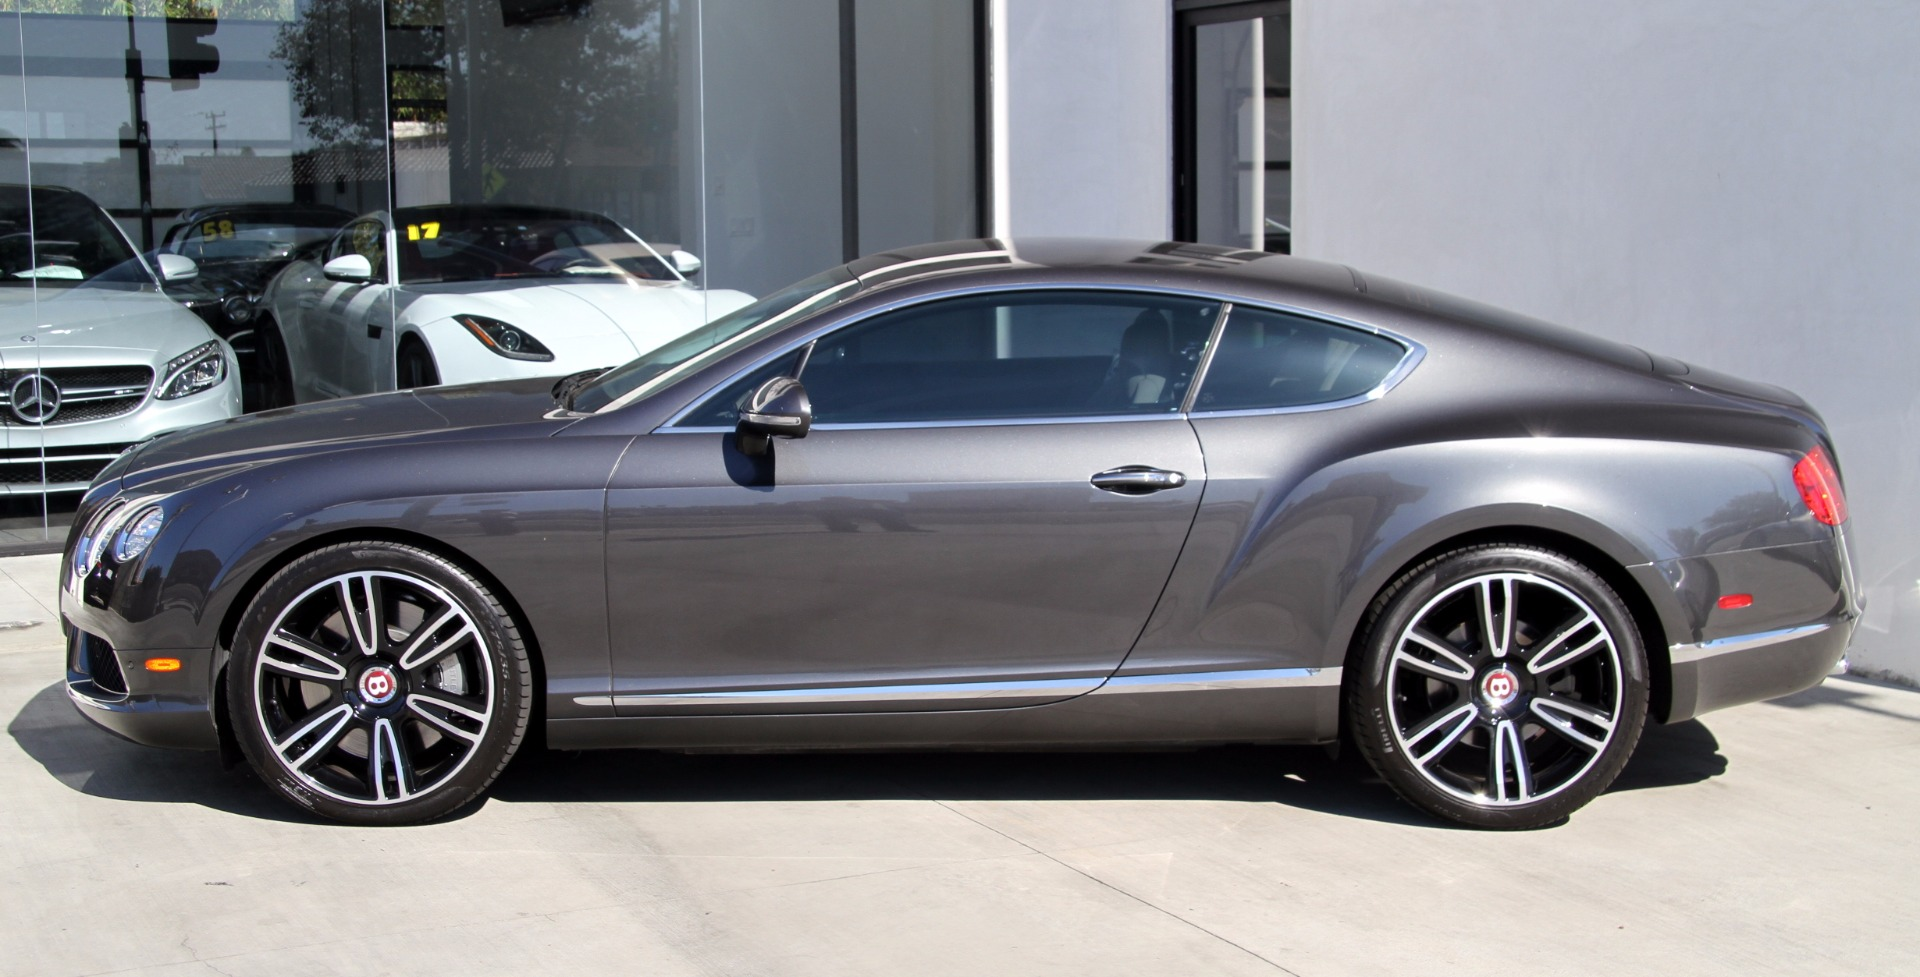 2013 Bentley Continental Gt Mulliner Edition Stock 6068b